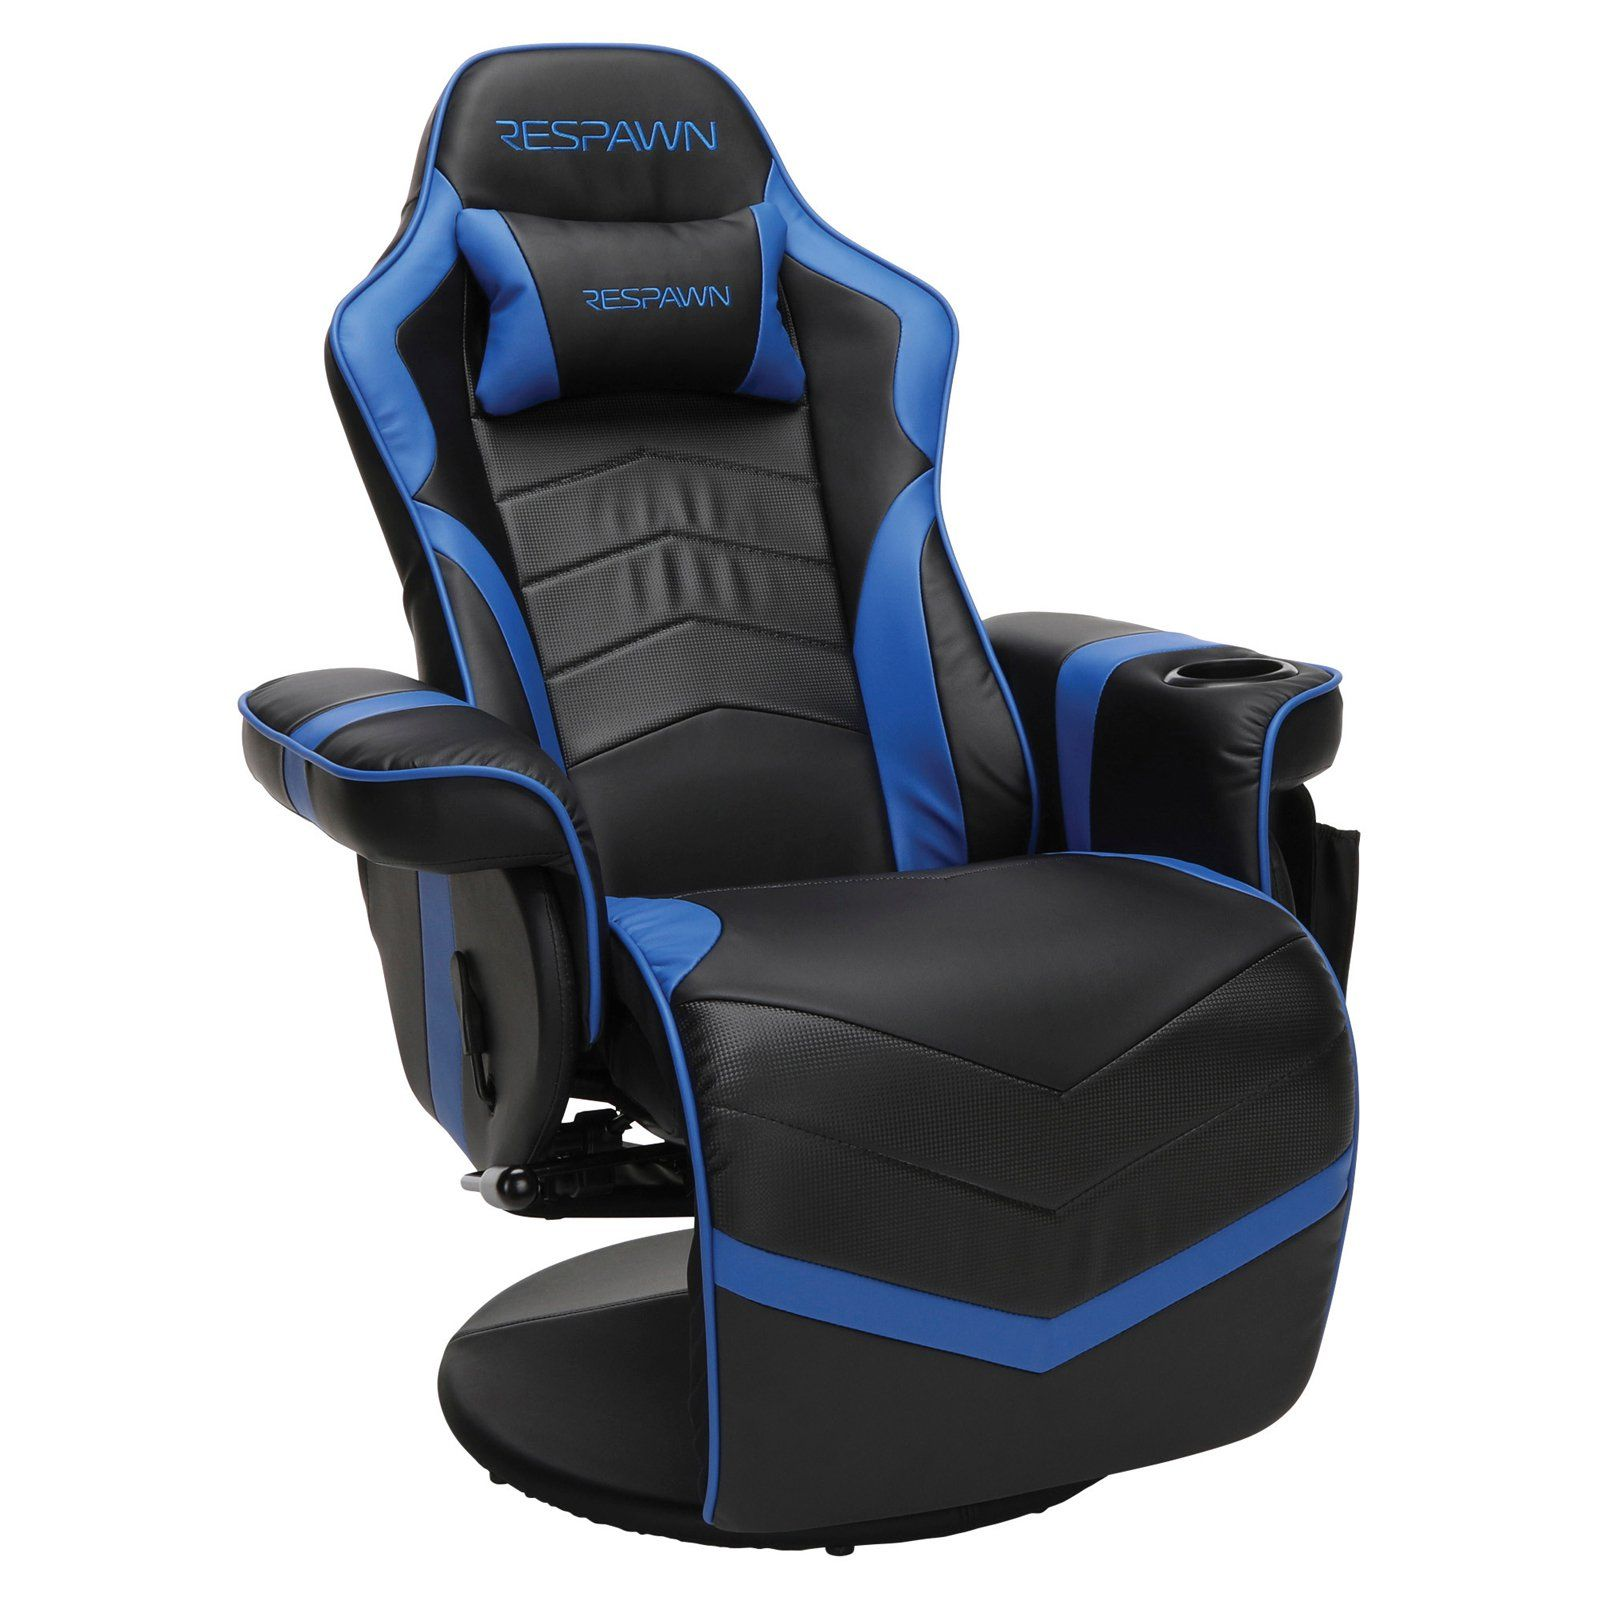 RESPAWN900 Racing Style Reclining Gaming Chair Blue in